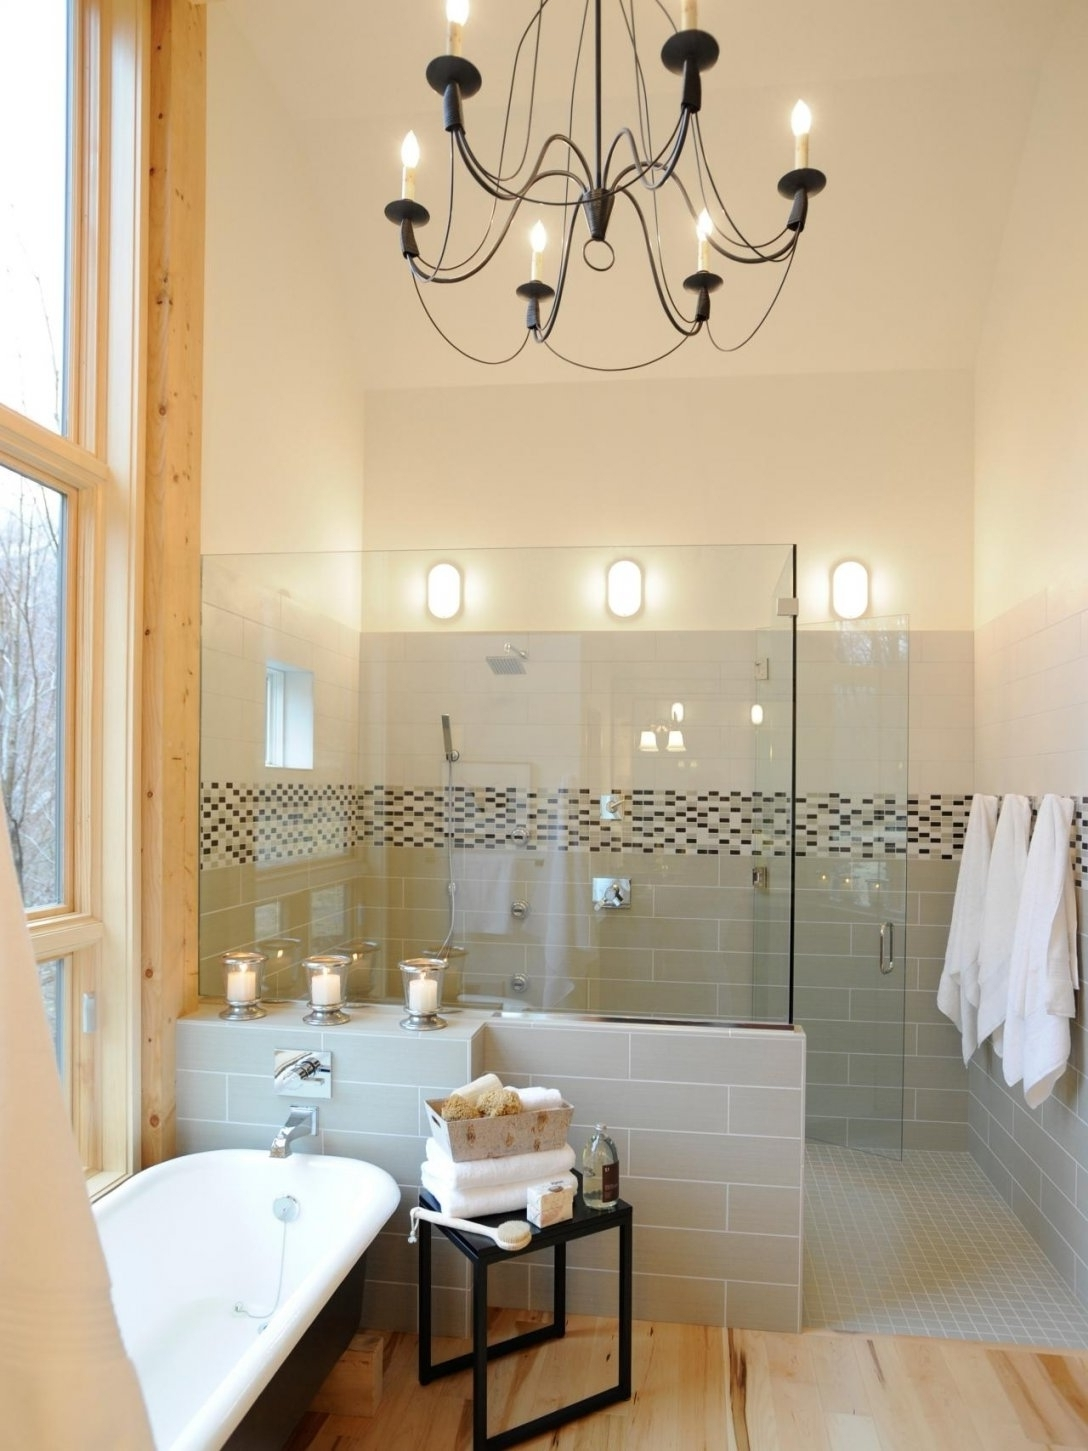 Widely Used Modern Bathroom Chandeliers With Regard To Modern Bathroom Chandeliers Ideas : Top Bathroom – Elegance And (View 20 of 20)